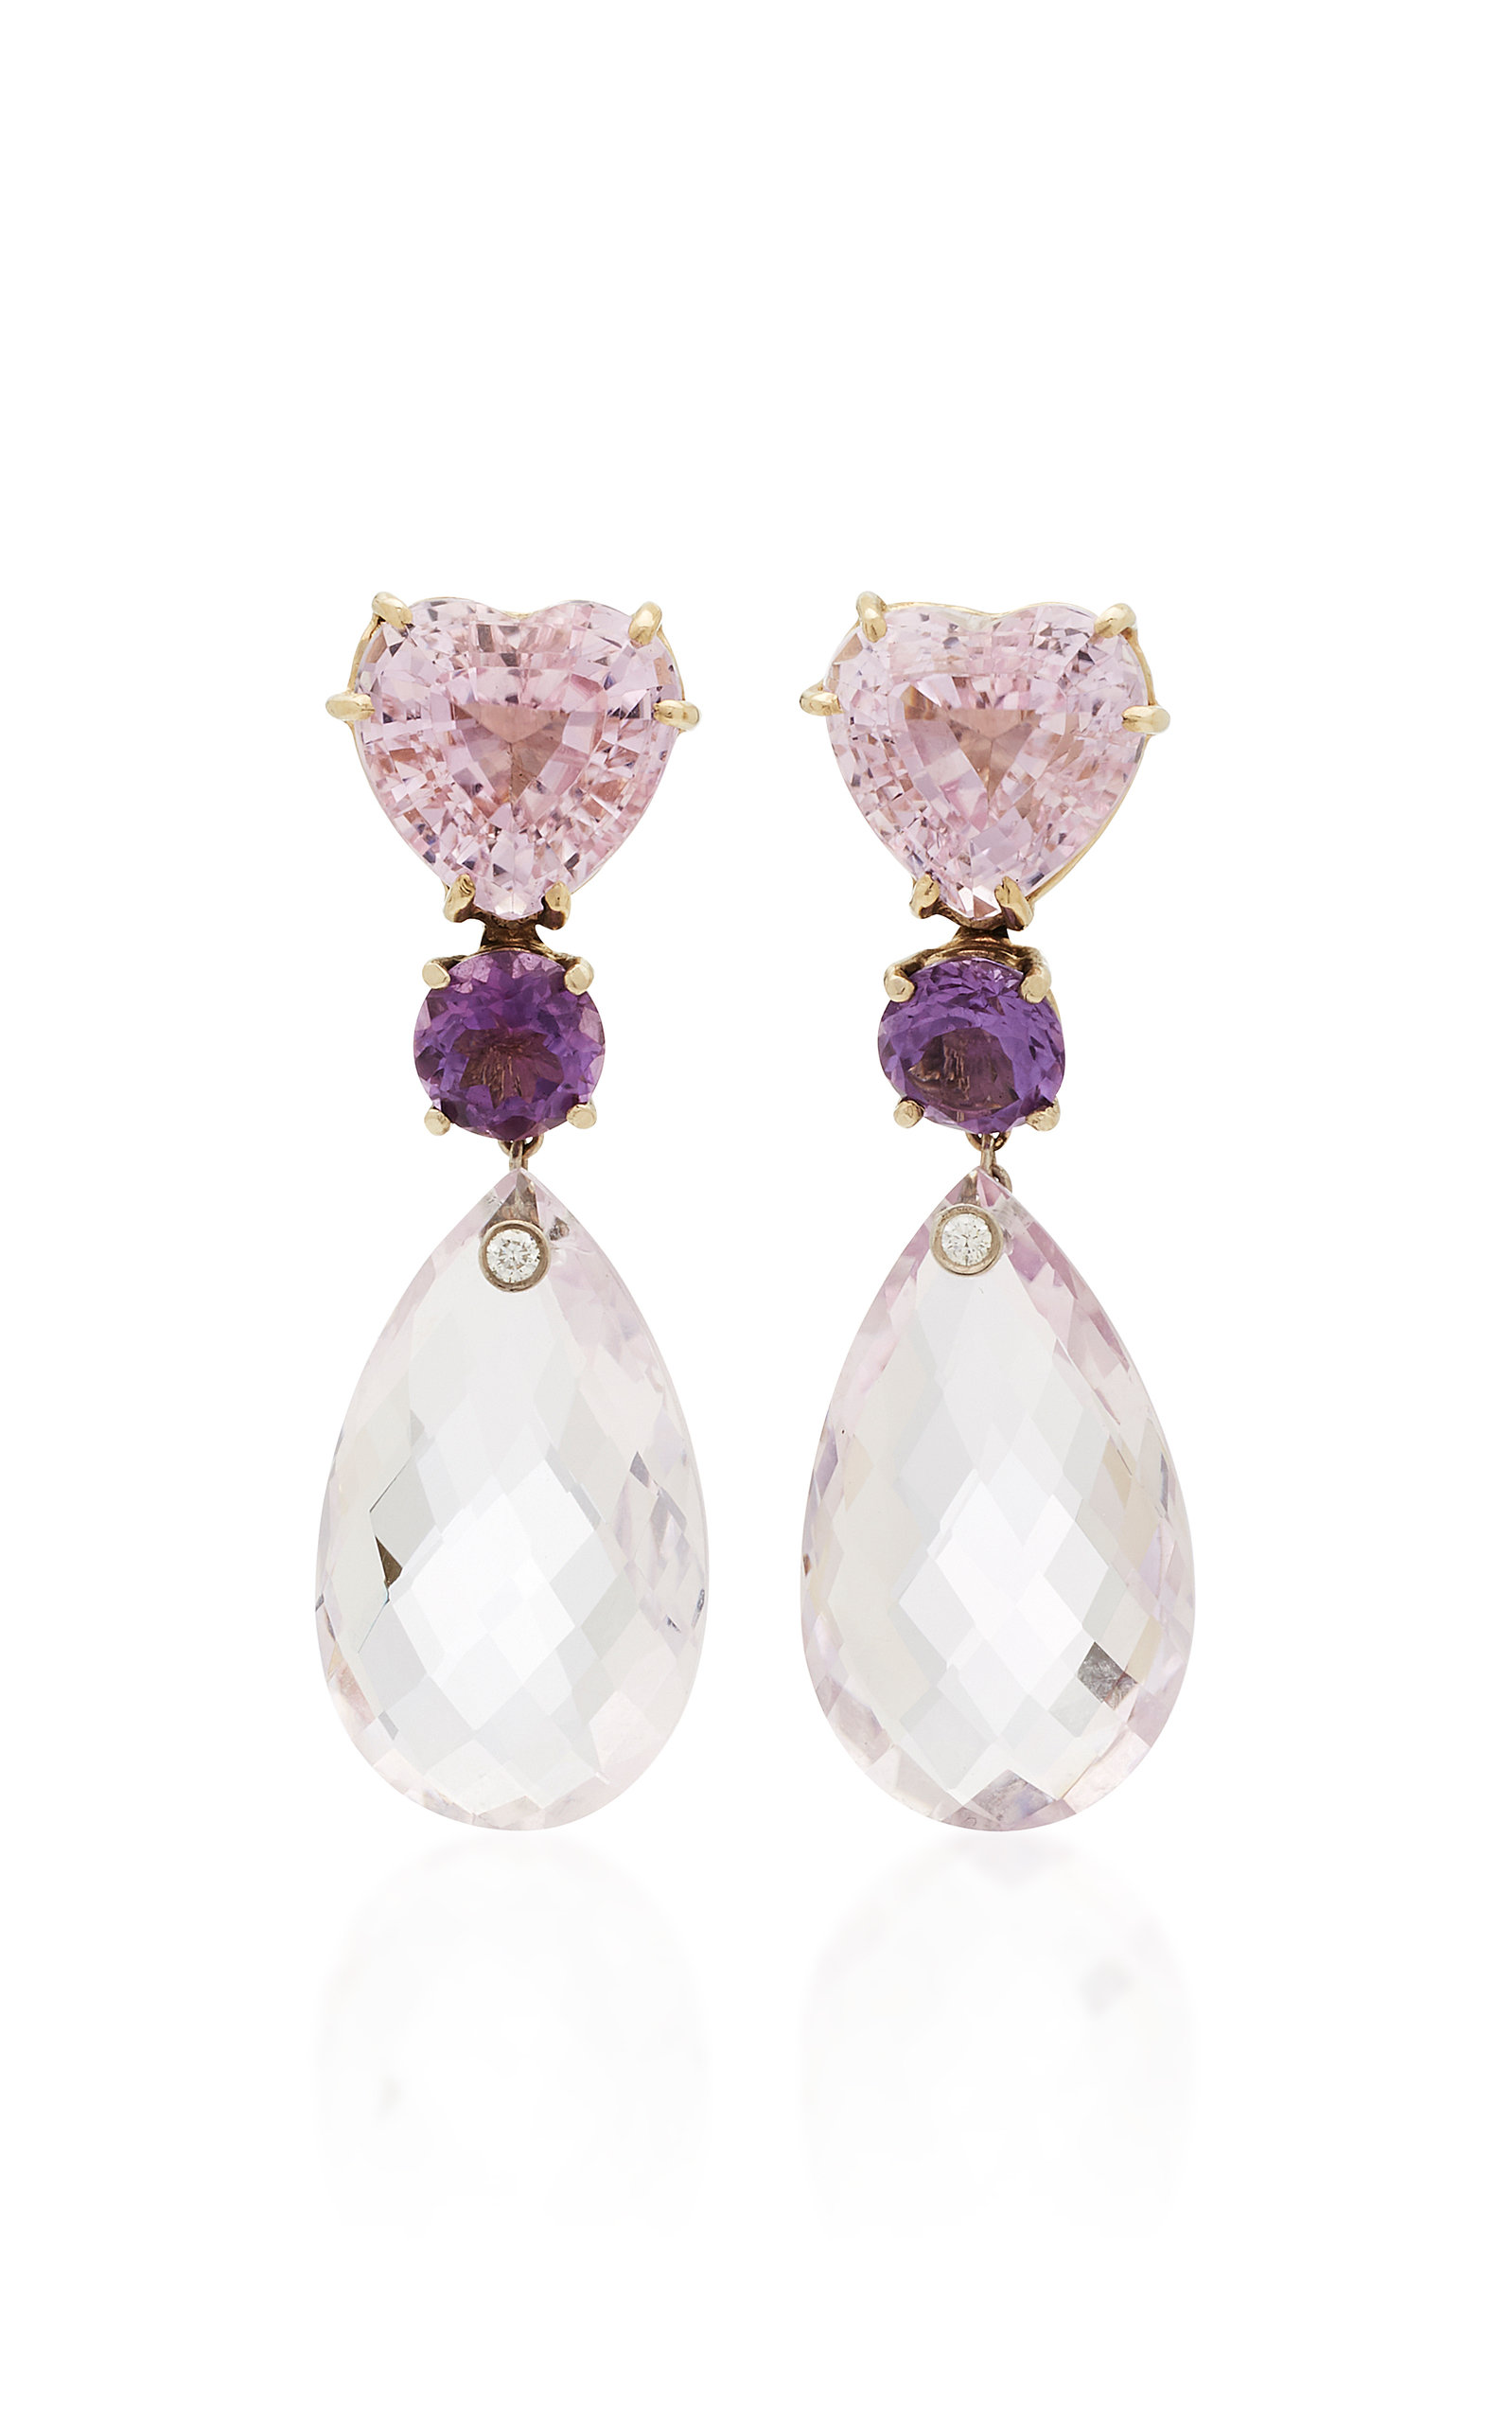 il gazing listing through and fullxfull rosette earrings au zoom vintage kunzite glass irgs copper